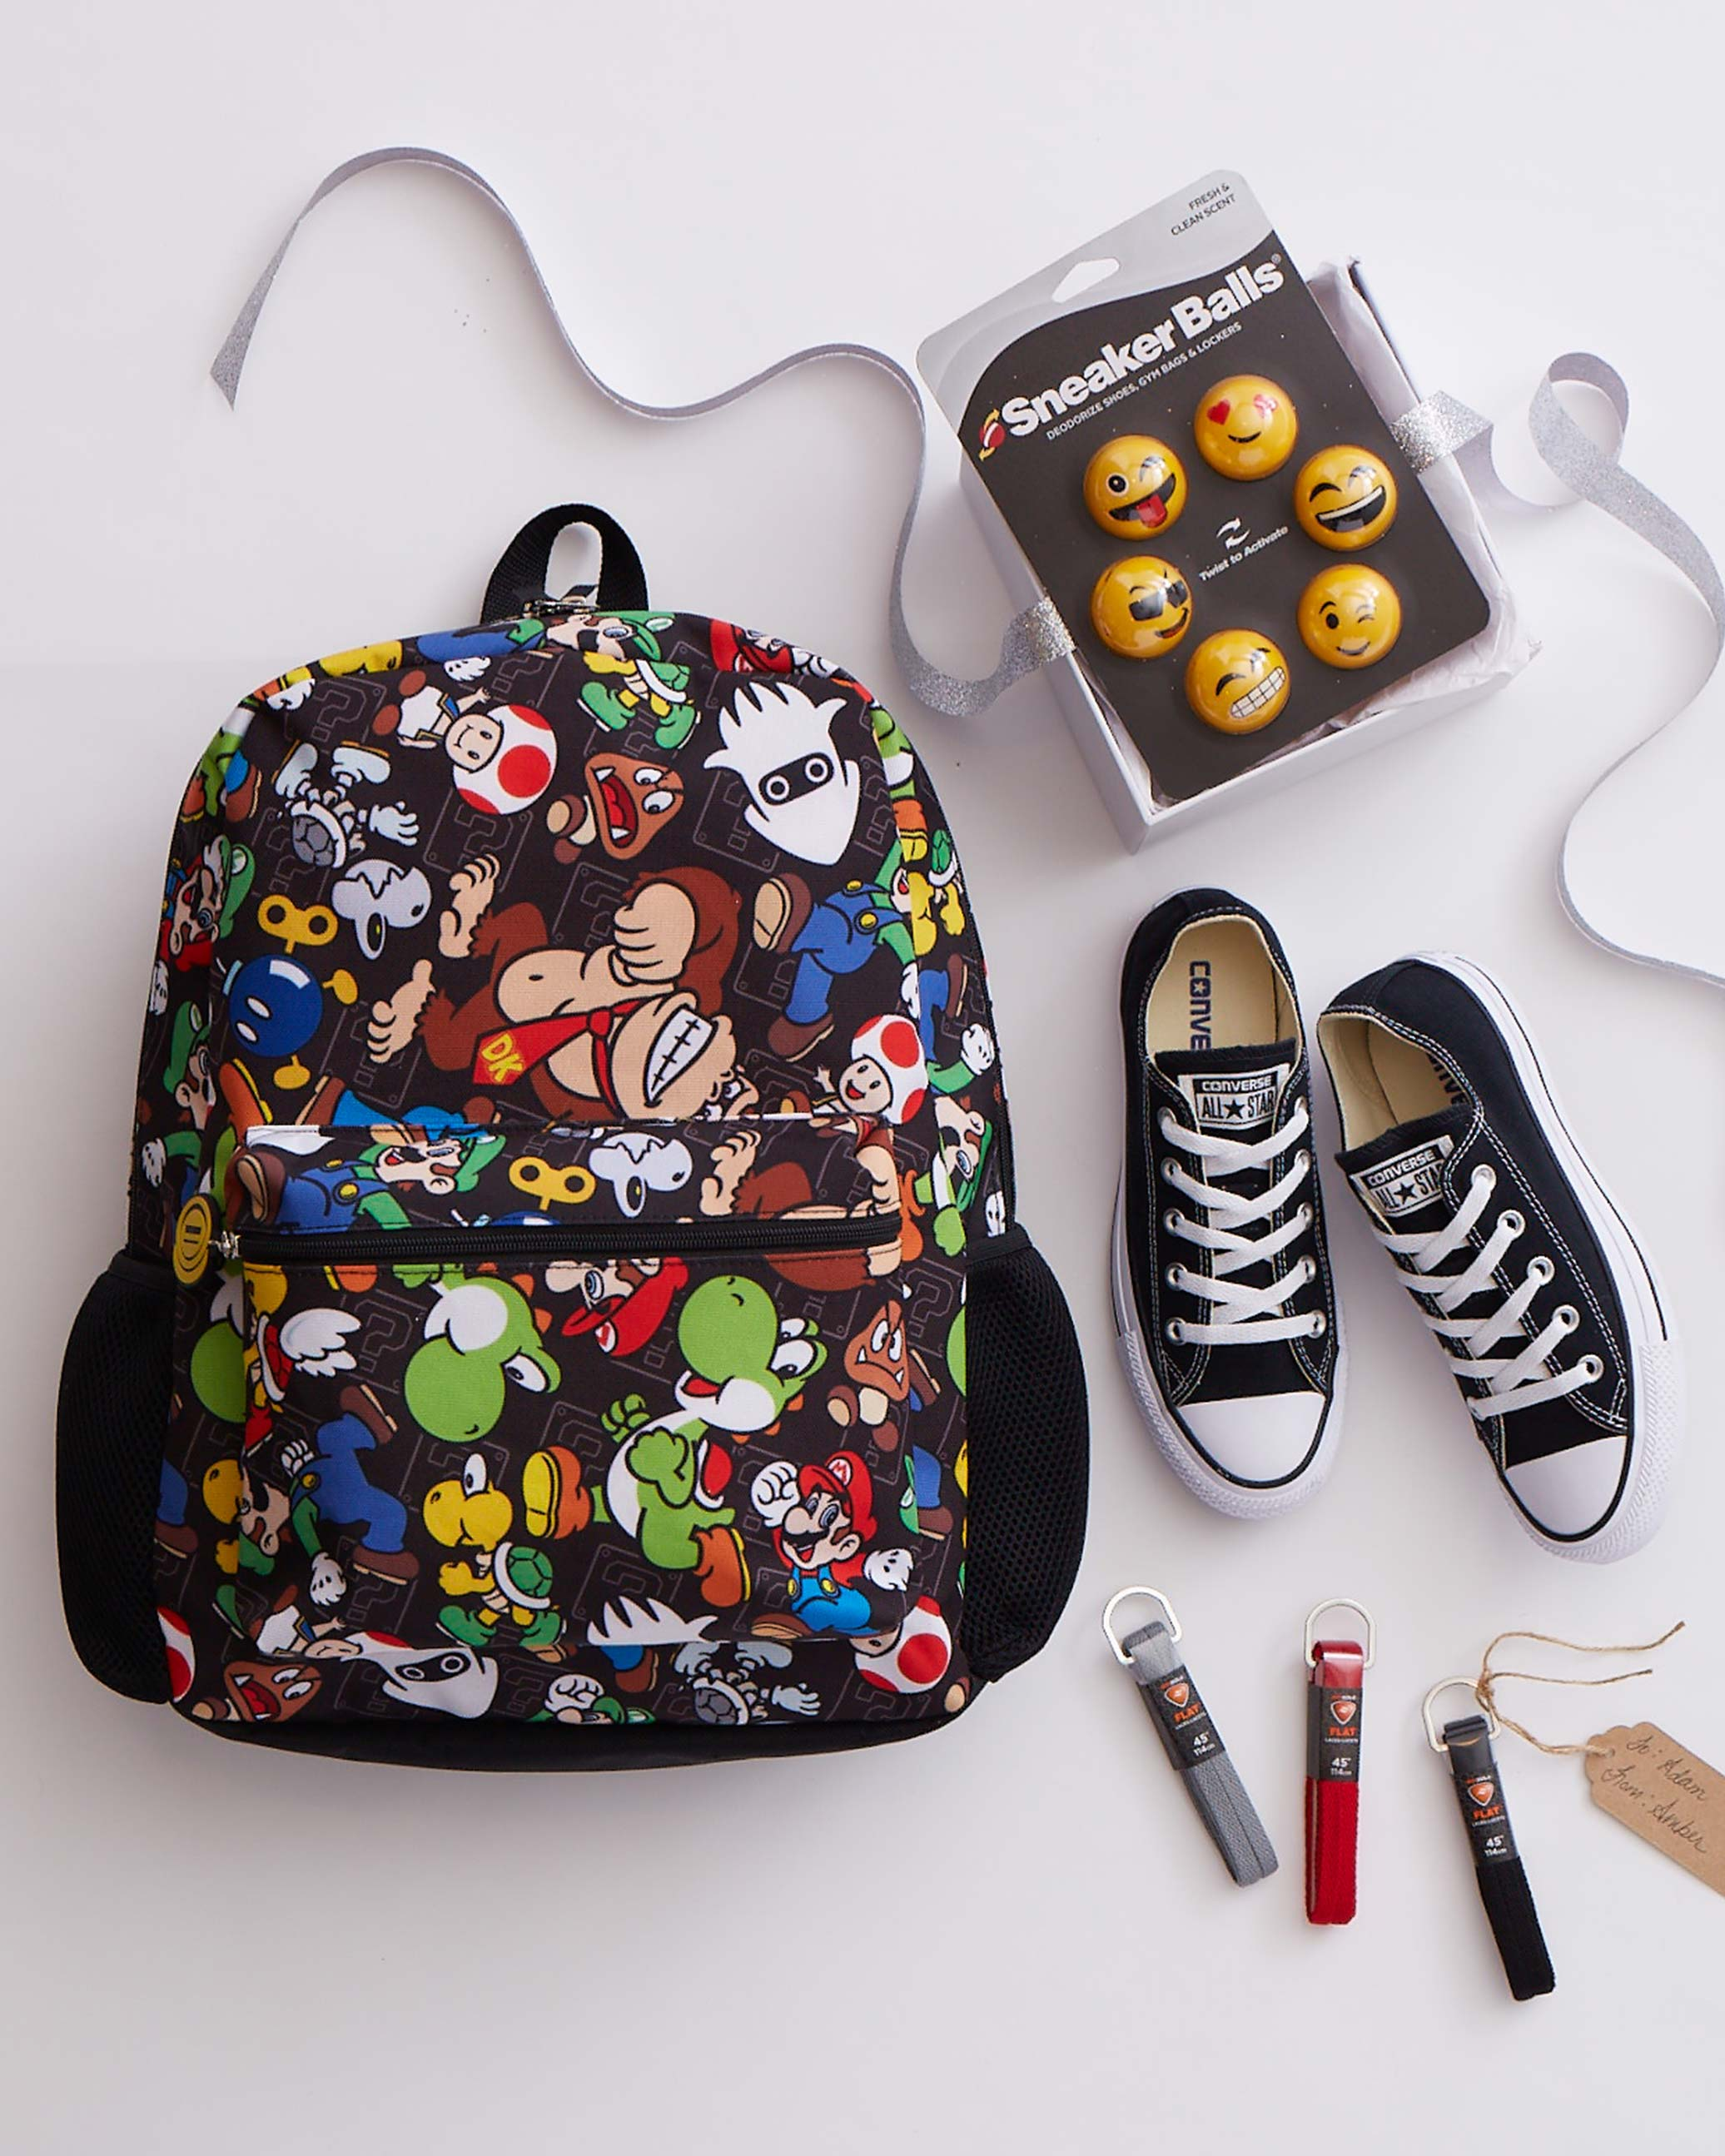 assorted gifts for Christmas, including a backpack and converse seakers